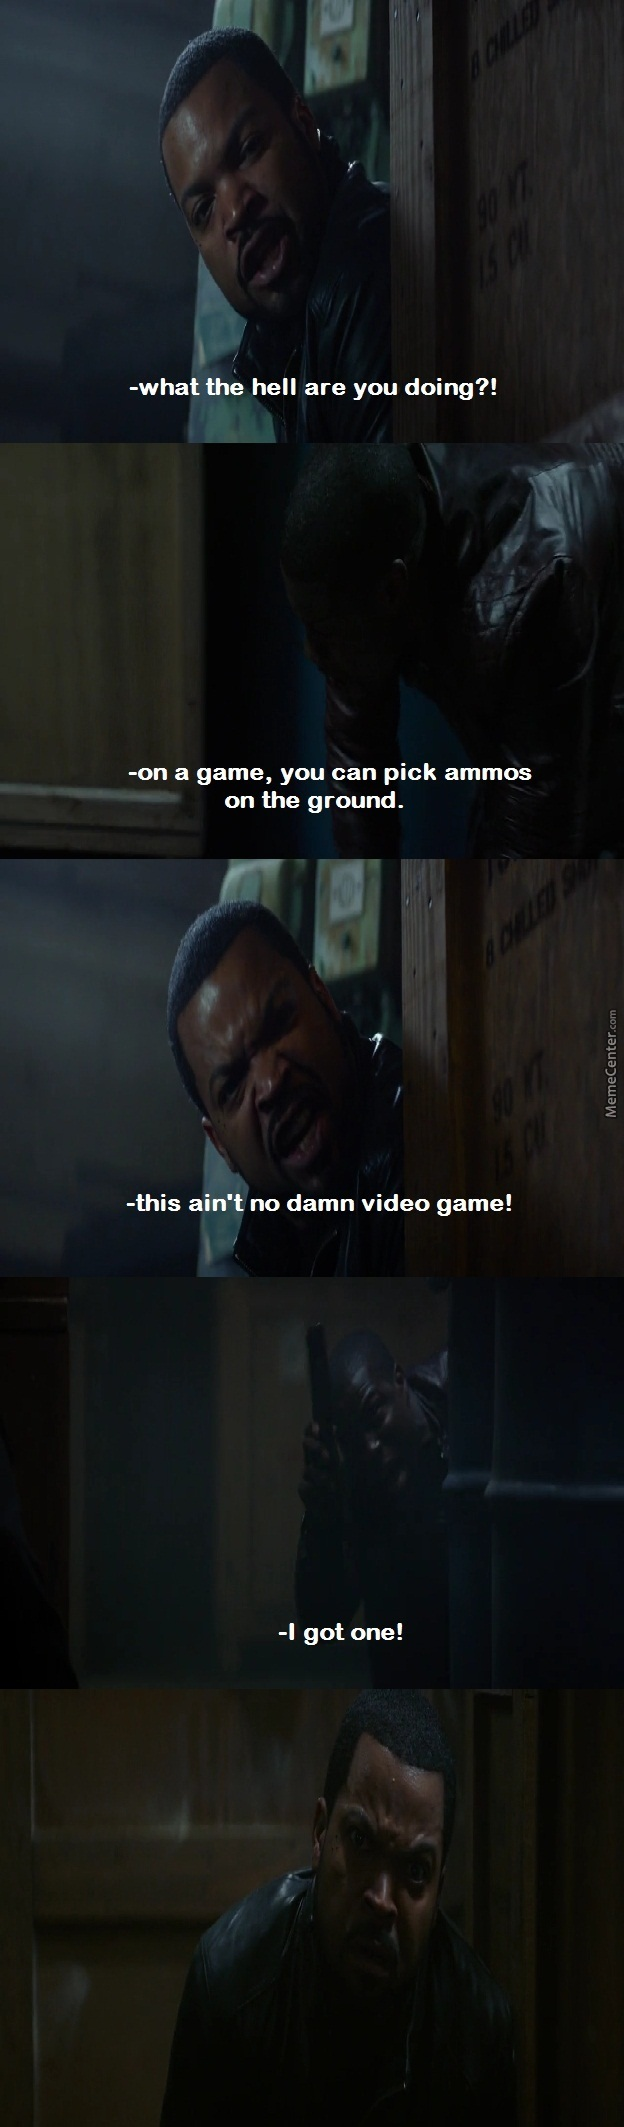 This Ain't No Damn Video Game!